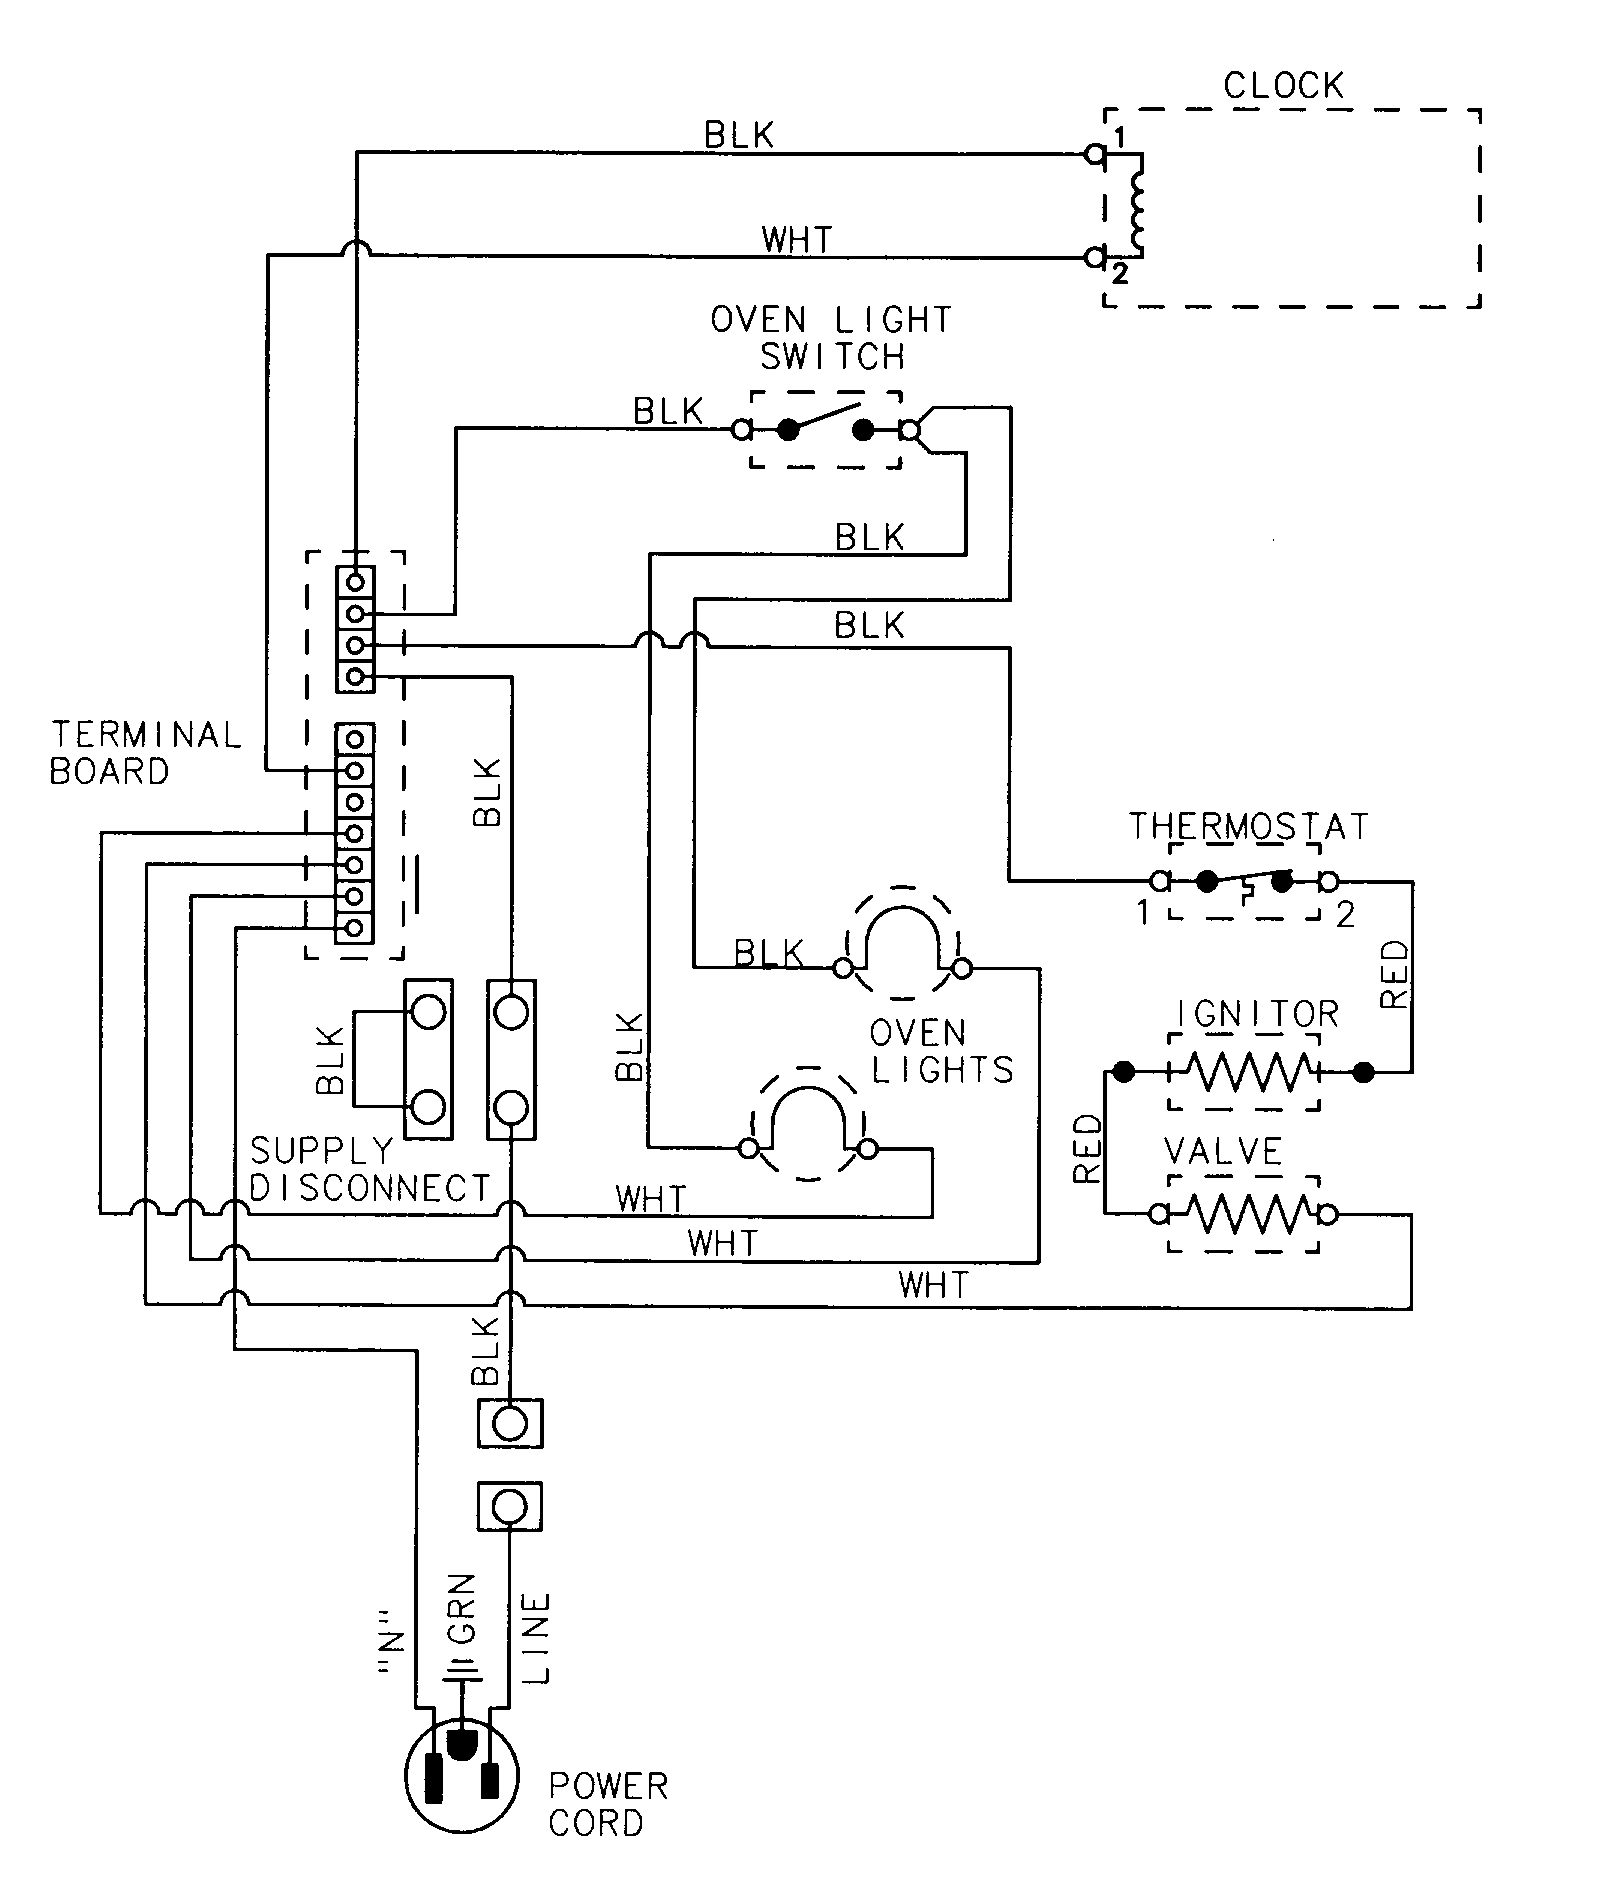 wiring diagram ups amp inverter wiring diagram for one room office